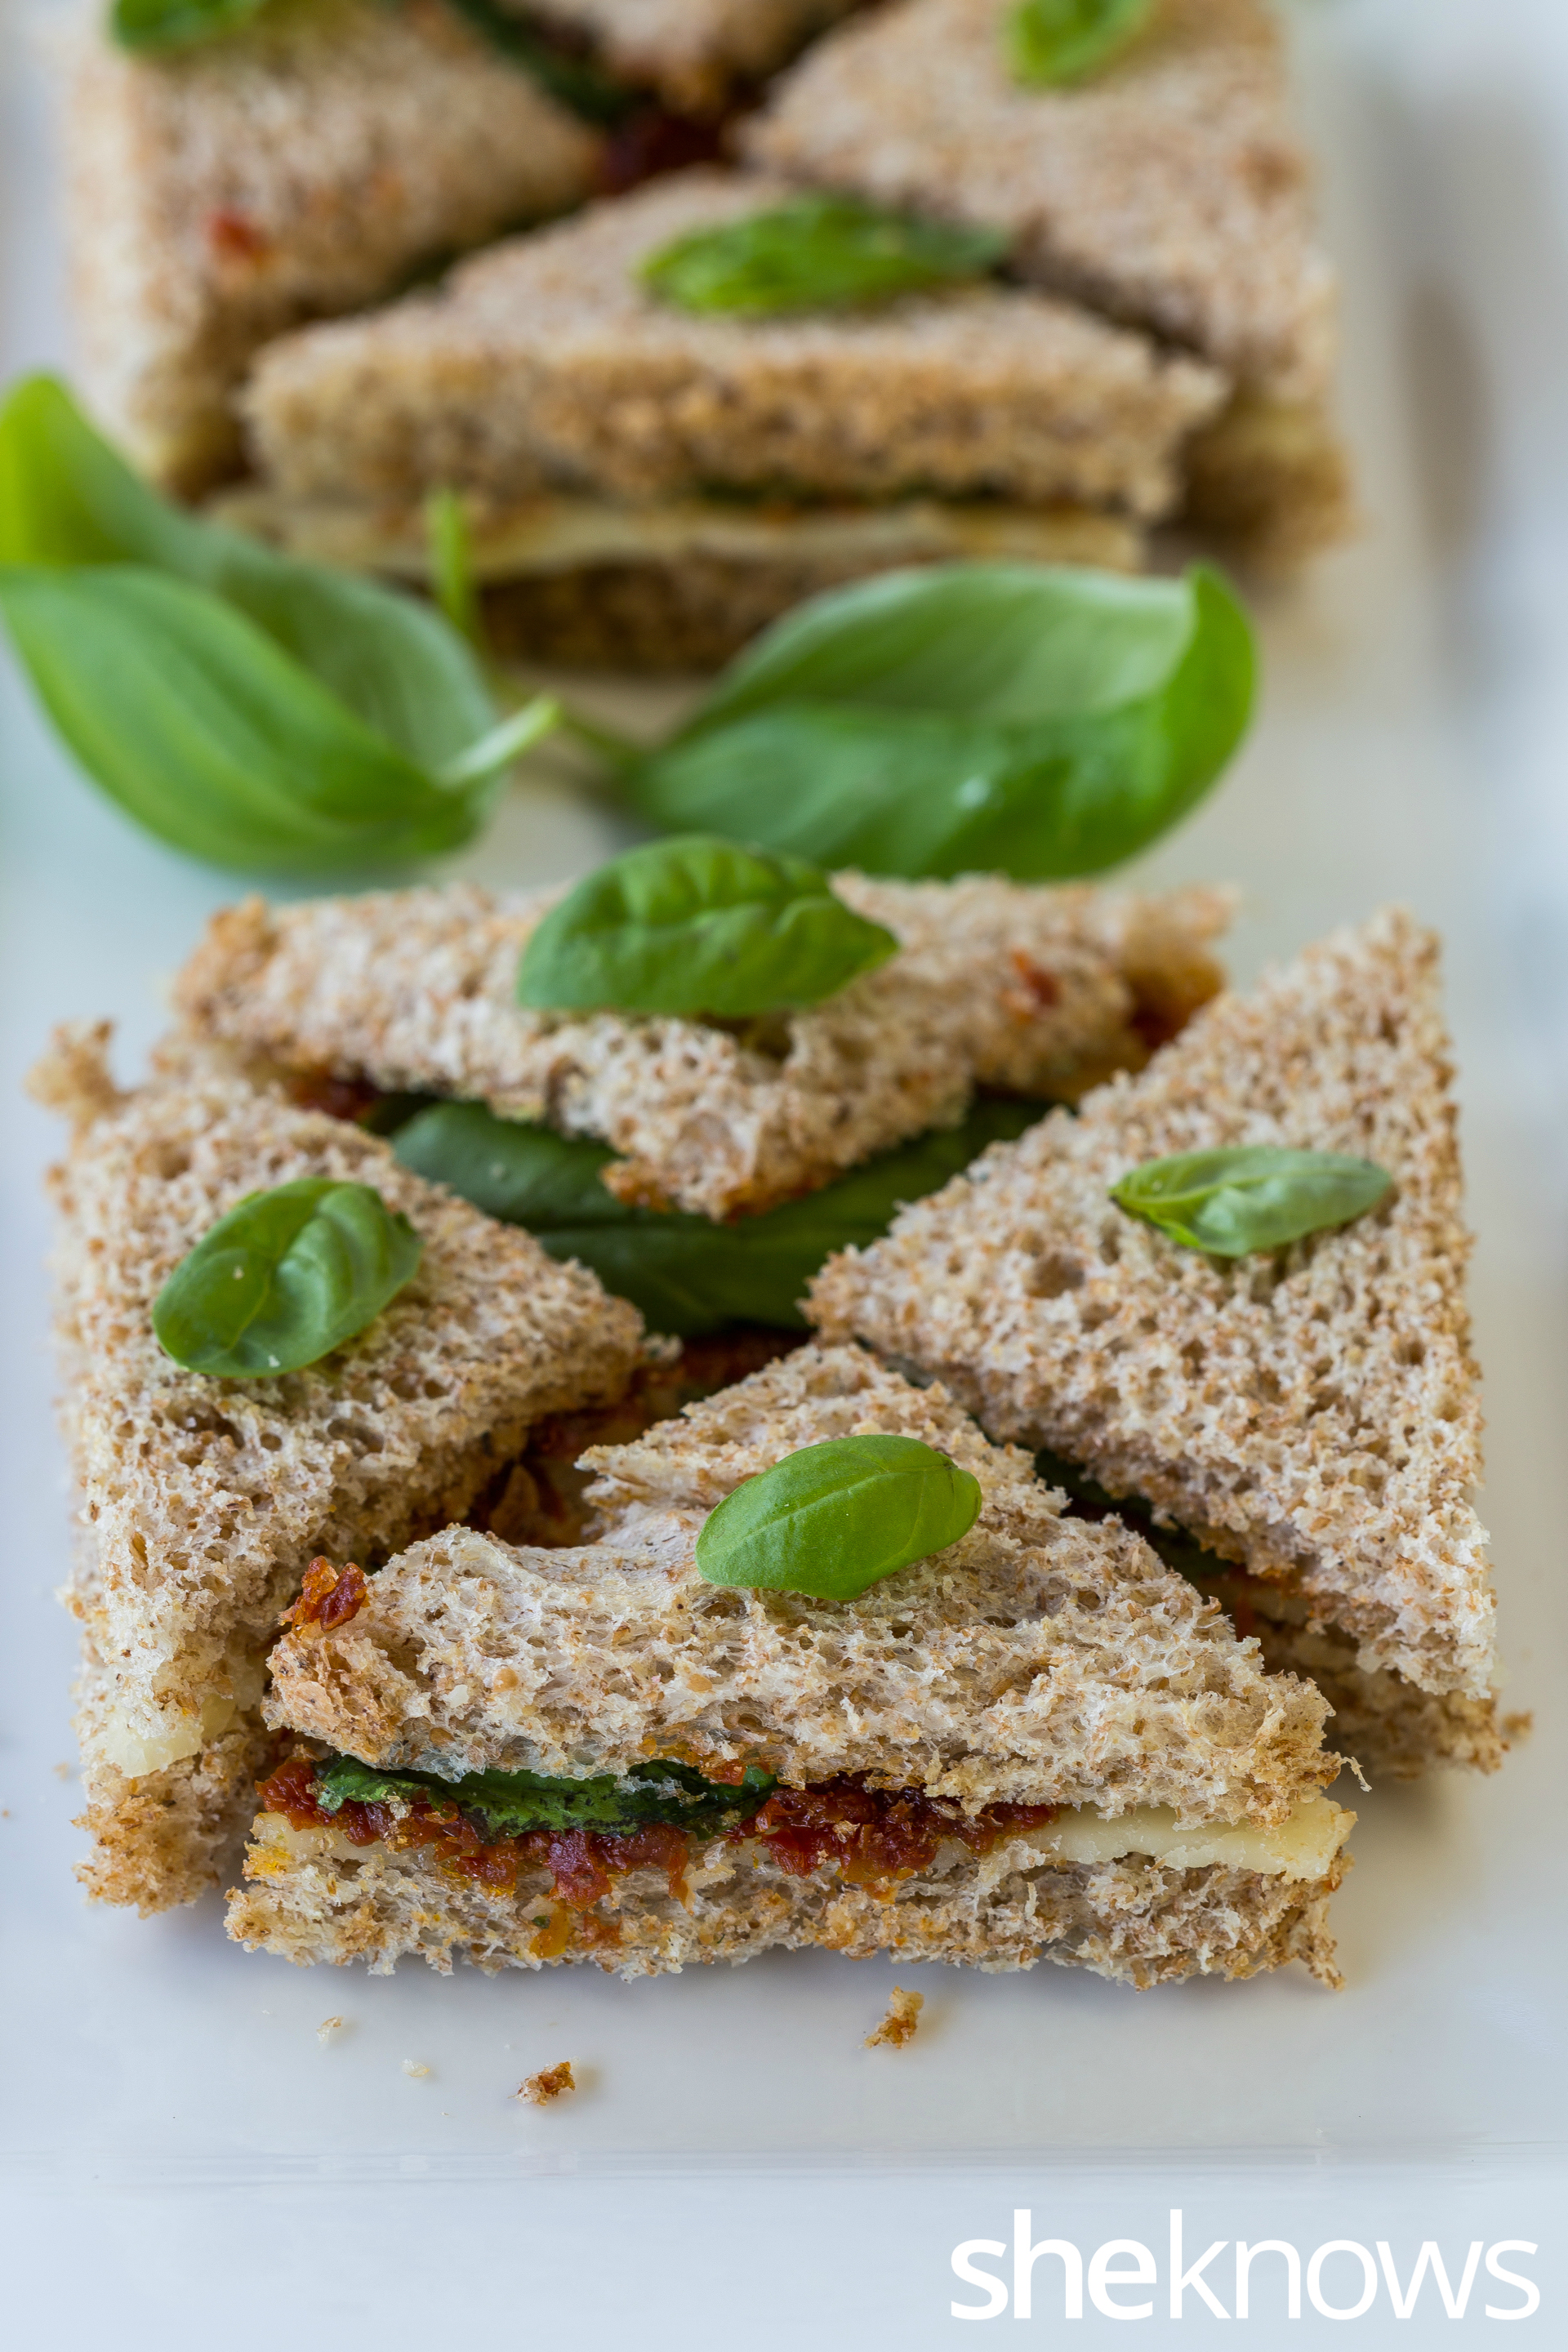 Sun-dried tomato paste, cheese & basil tea sandwich